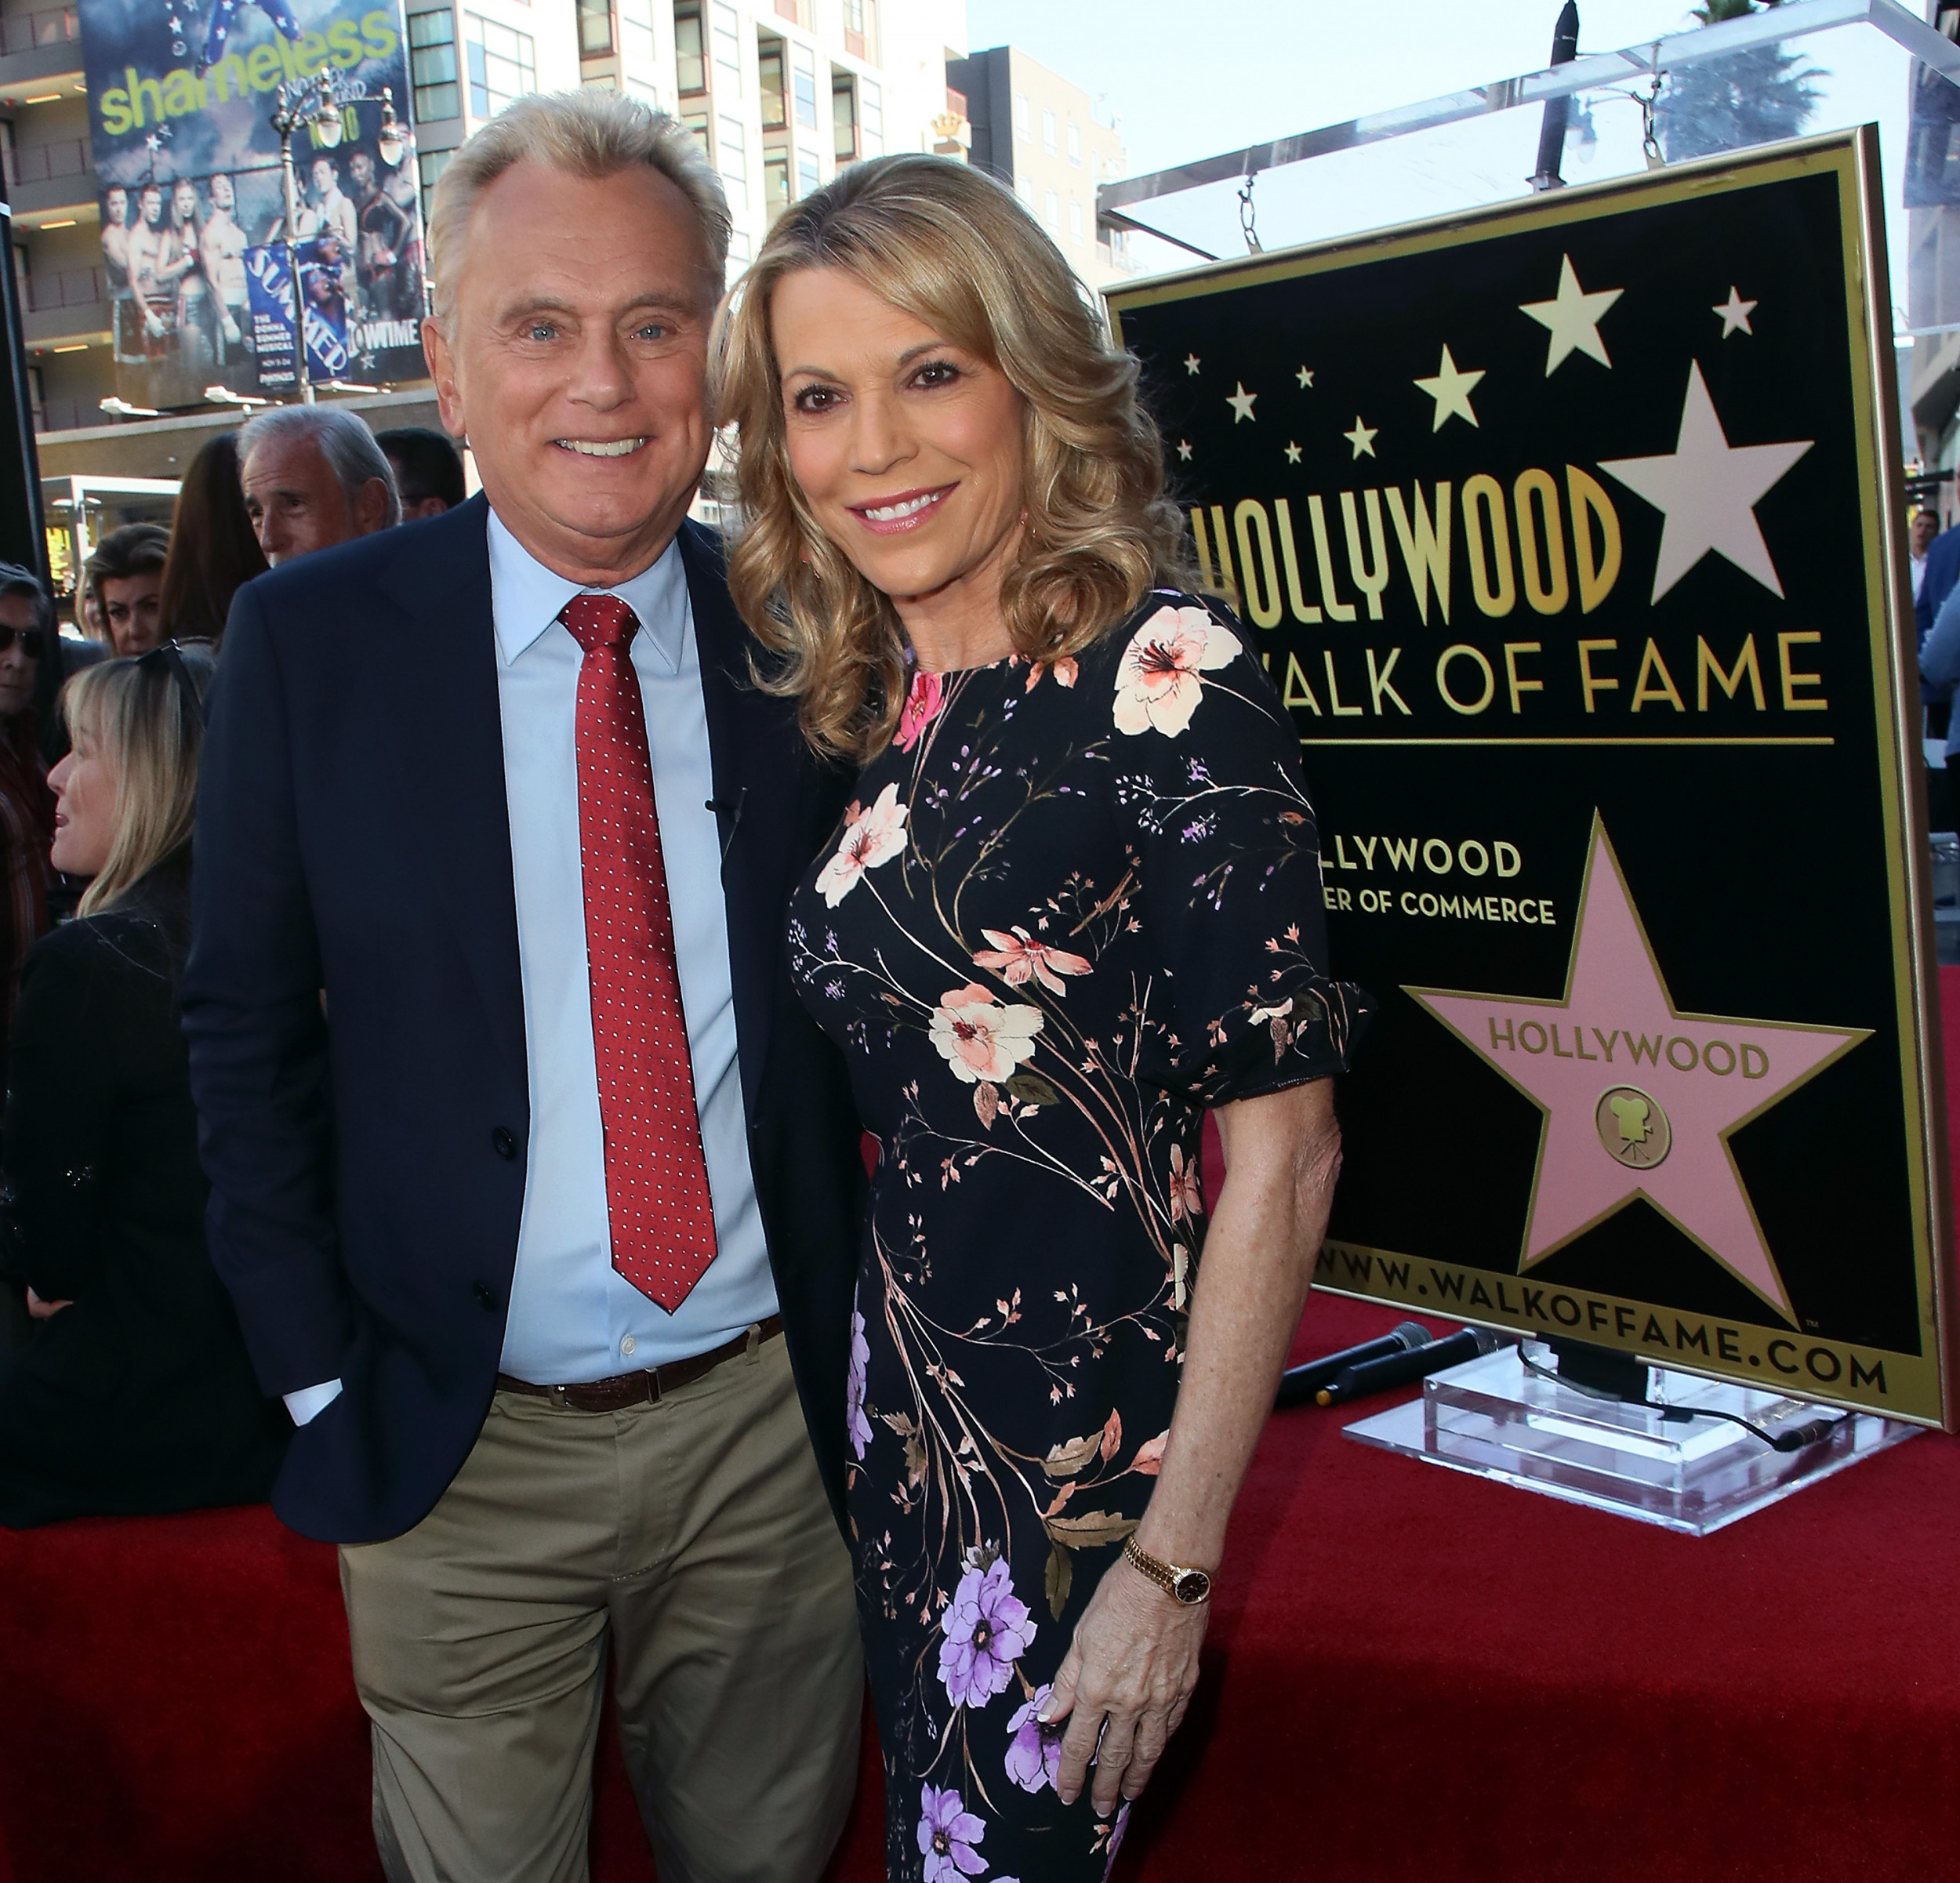 Wheel Of Fortune Host Pat Sajak Seen In First Public Appearance Following Recent Emergency Surgery